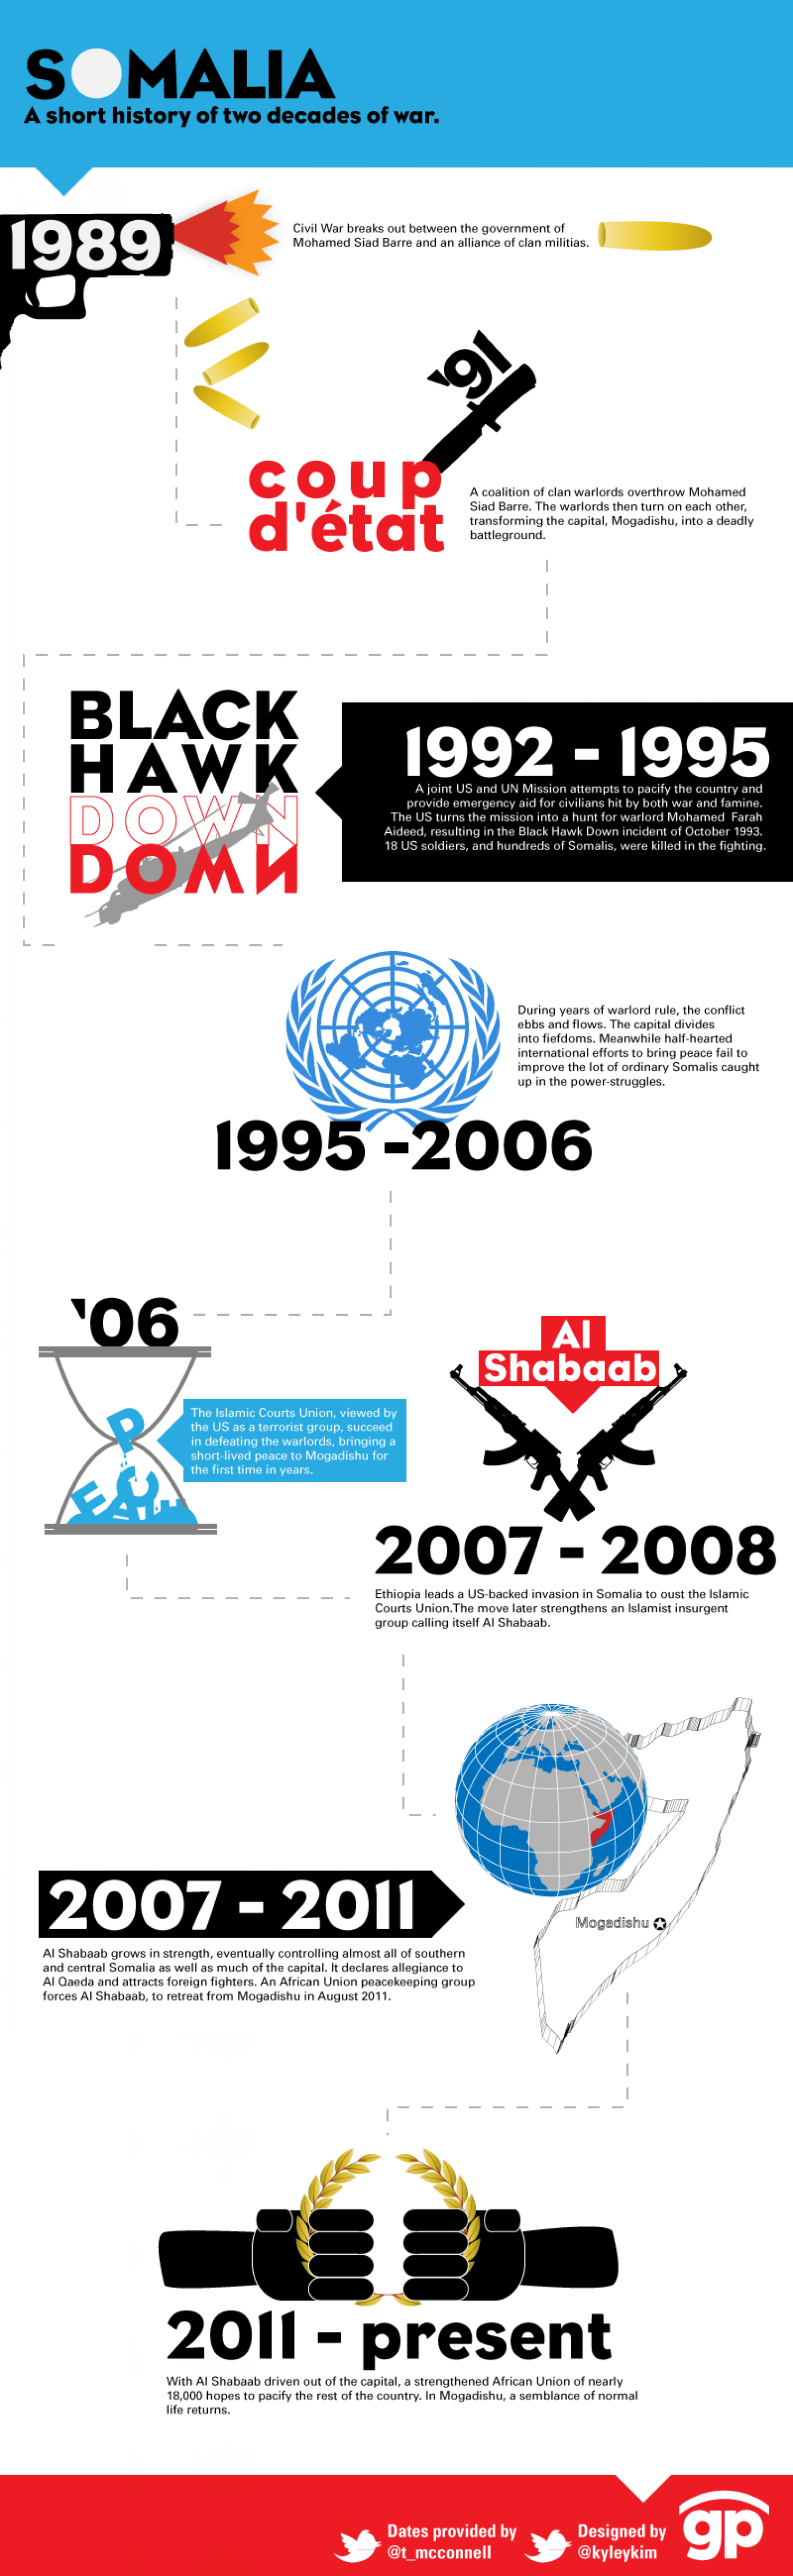 Somalia: a short history of two decades of war Infographic